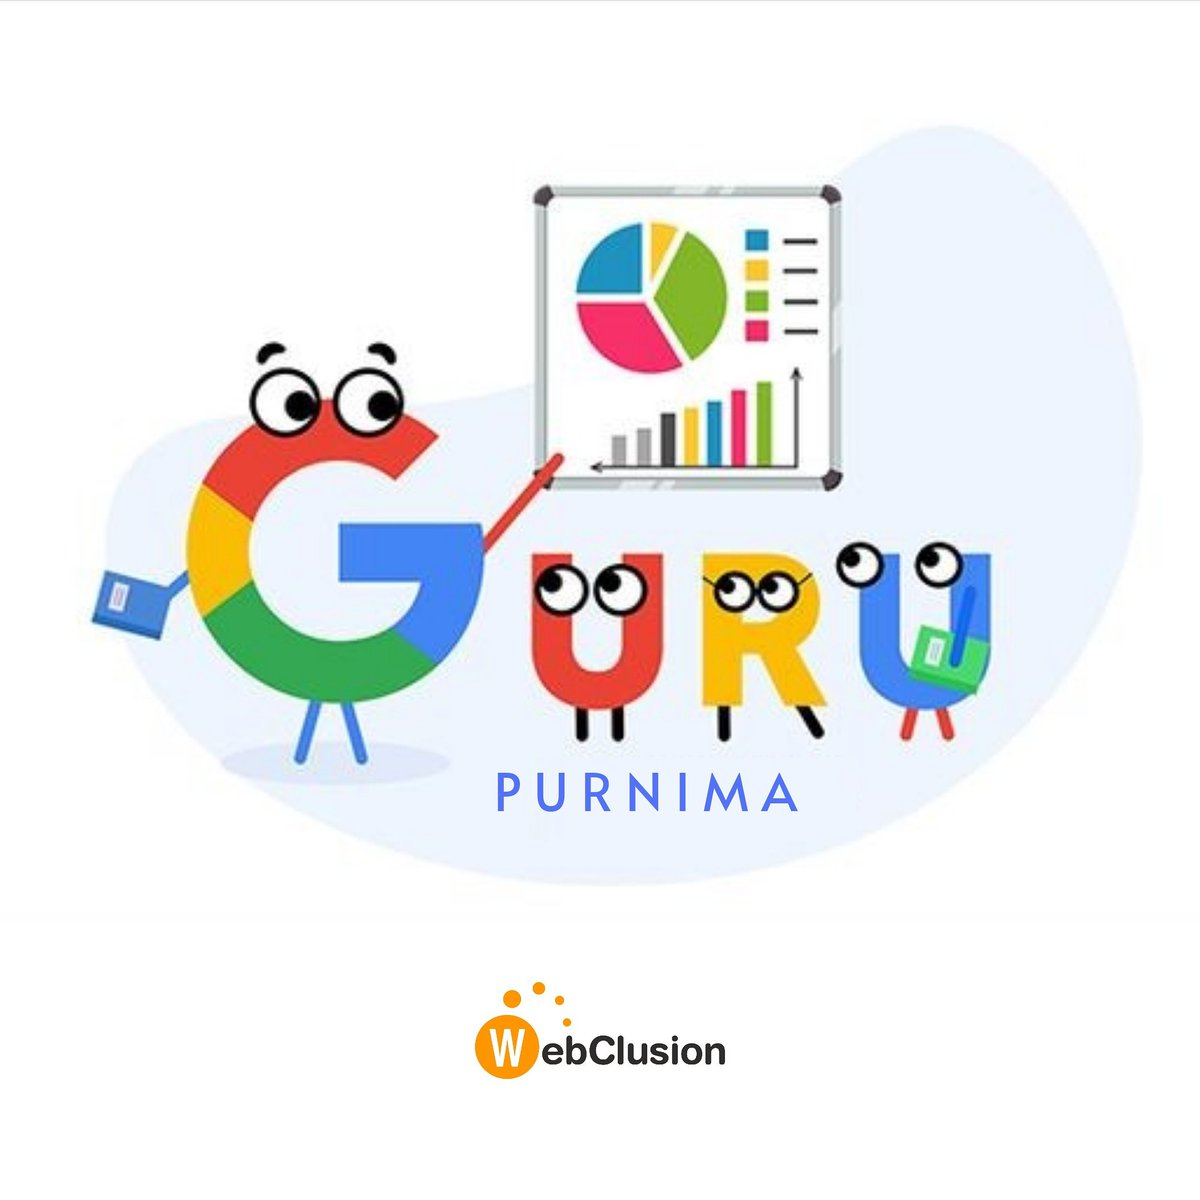 Digital Guru Happy Guru purnima to all from Team Webclusion #webclusion #google #gurupurnima #guruji #gurupurnima2019 #gurupoornima#gurupoornima2020   #SEO #paidmarketing #Socialmediamarketing #website #memes#digitalmarketing #advertisements #displayadvertisingpic.twitter.com/ijSPgTHq5v